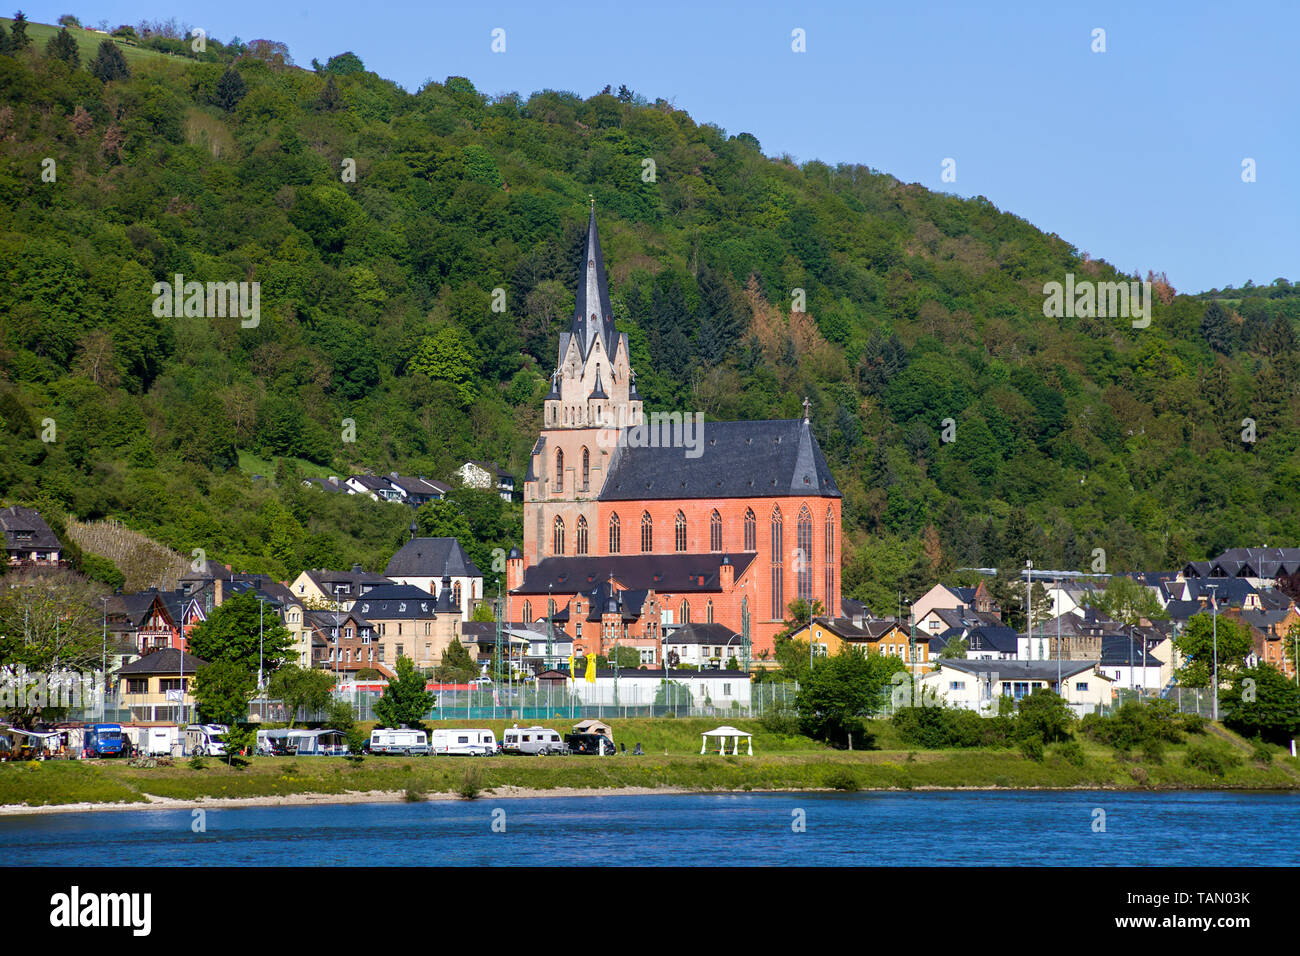 Die Liebfrauenkirche in Oberwesel, Rhein-Hunsrück-Kreis, Oberes Mittelrheintal, Rheinland-Pfalz, Deutschland | Church of Our Lady (Liebfrauenkirche) a Stock Photo